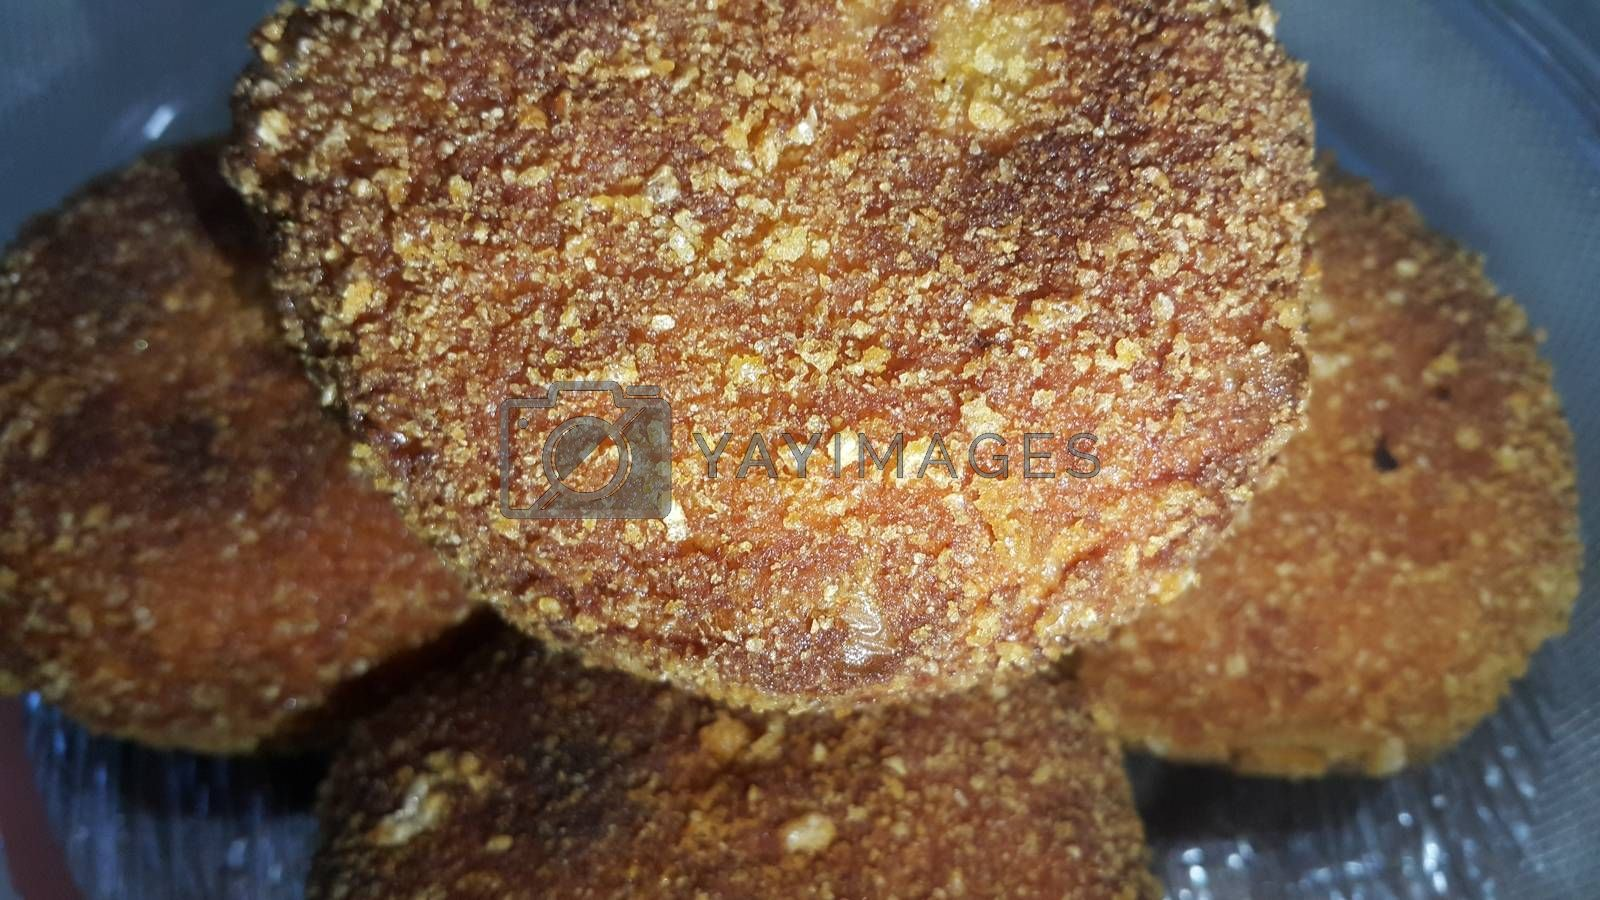 Royalty free image of Closeup view of fried pizza bombs or pizza balls are altered form of pizza. by Photochowk